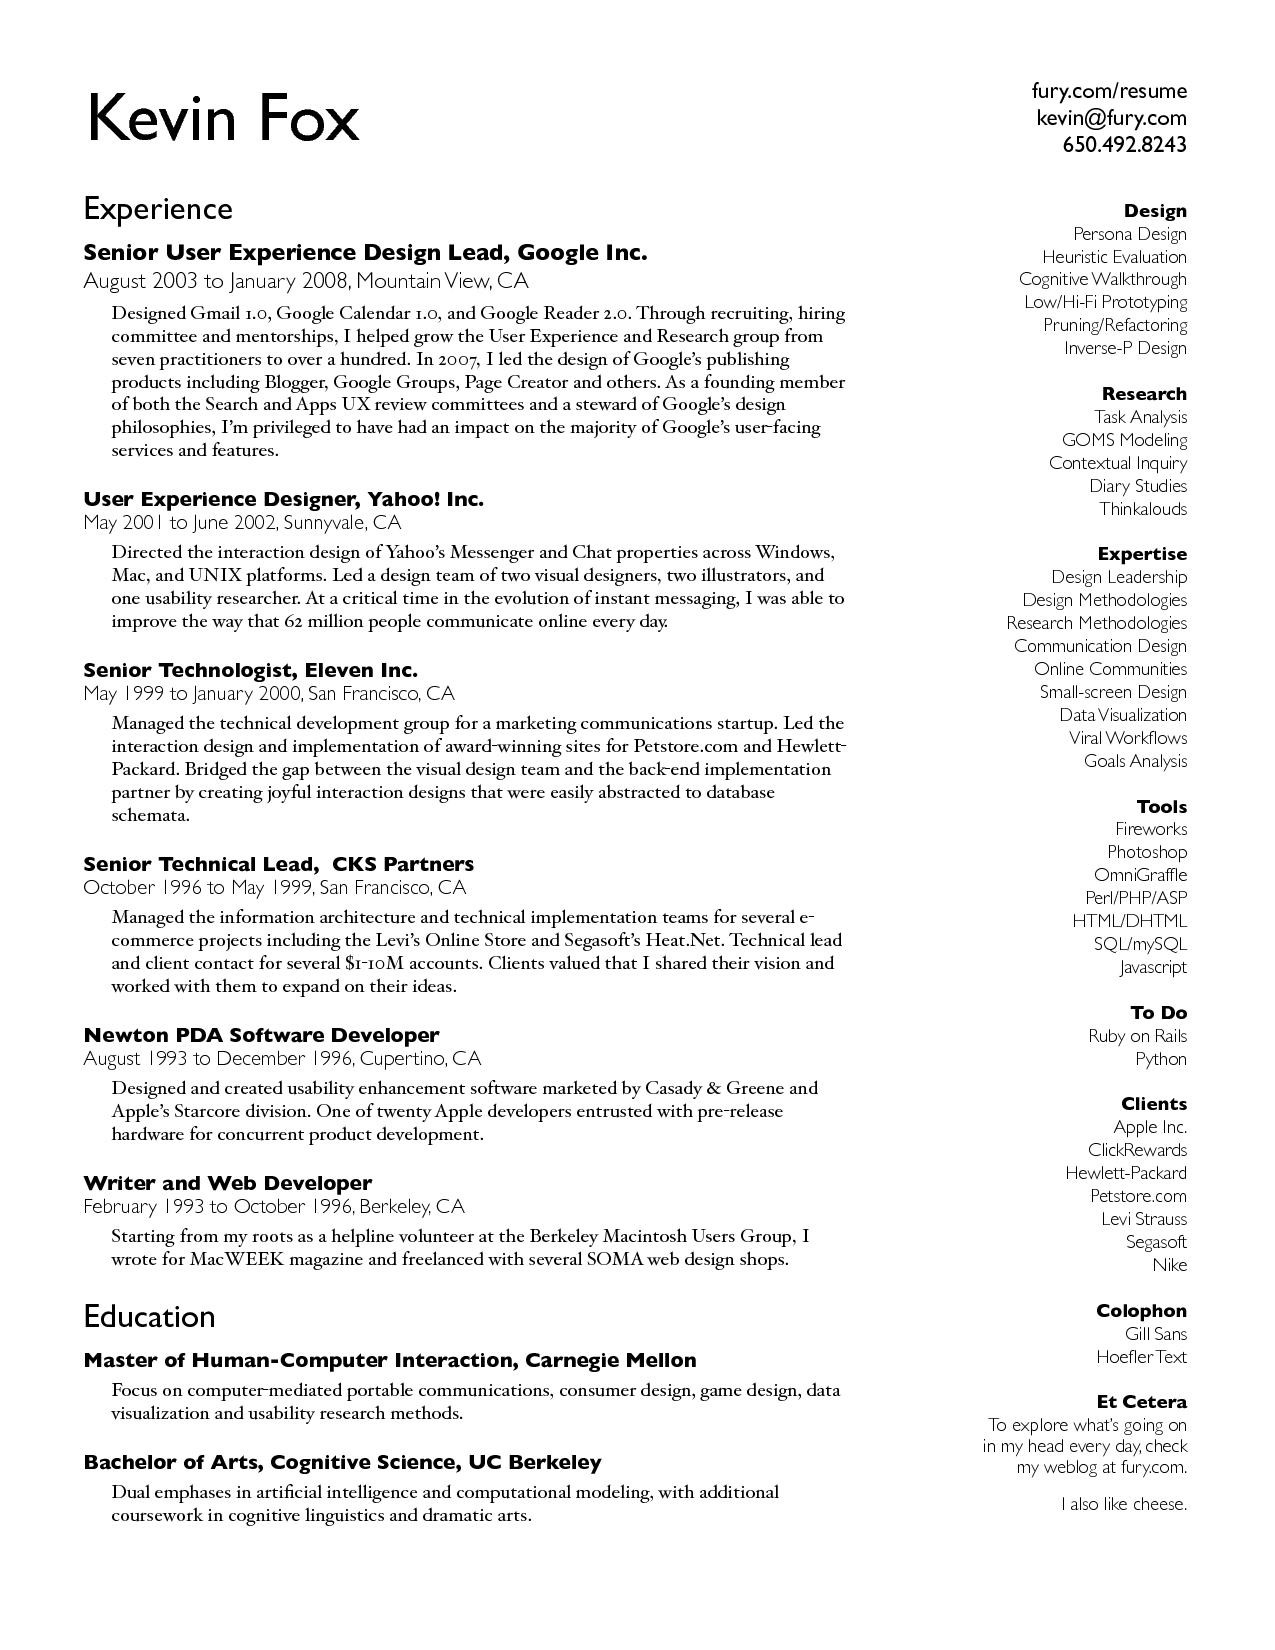 Exclusive Resume Templates Google 15 Docs Template CV Resume Ideas